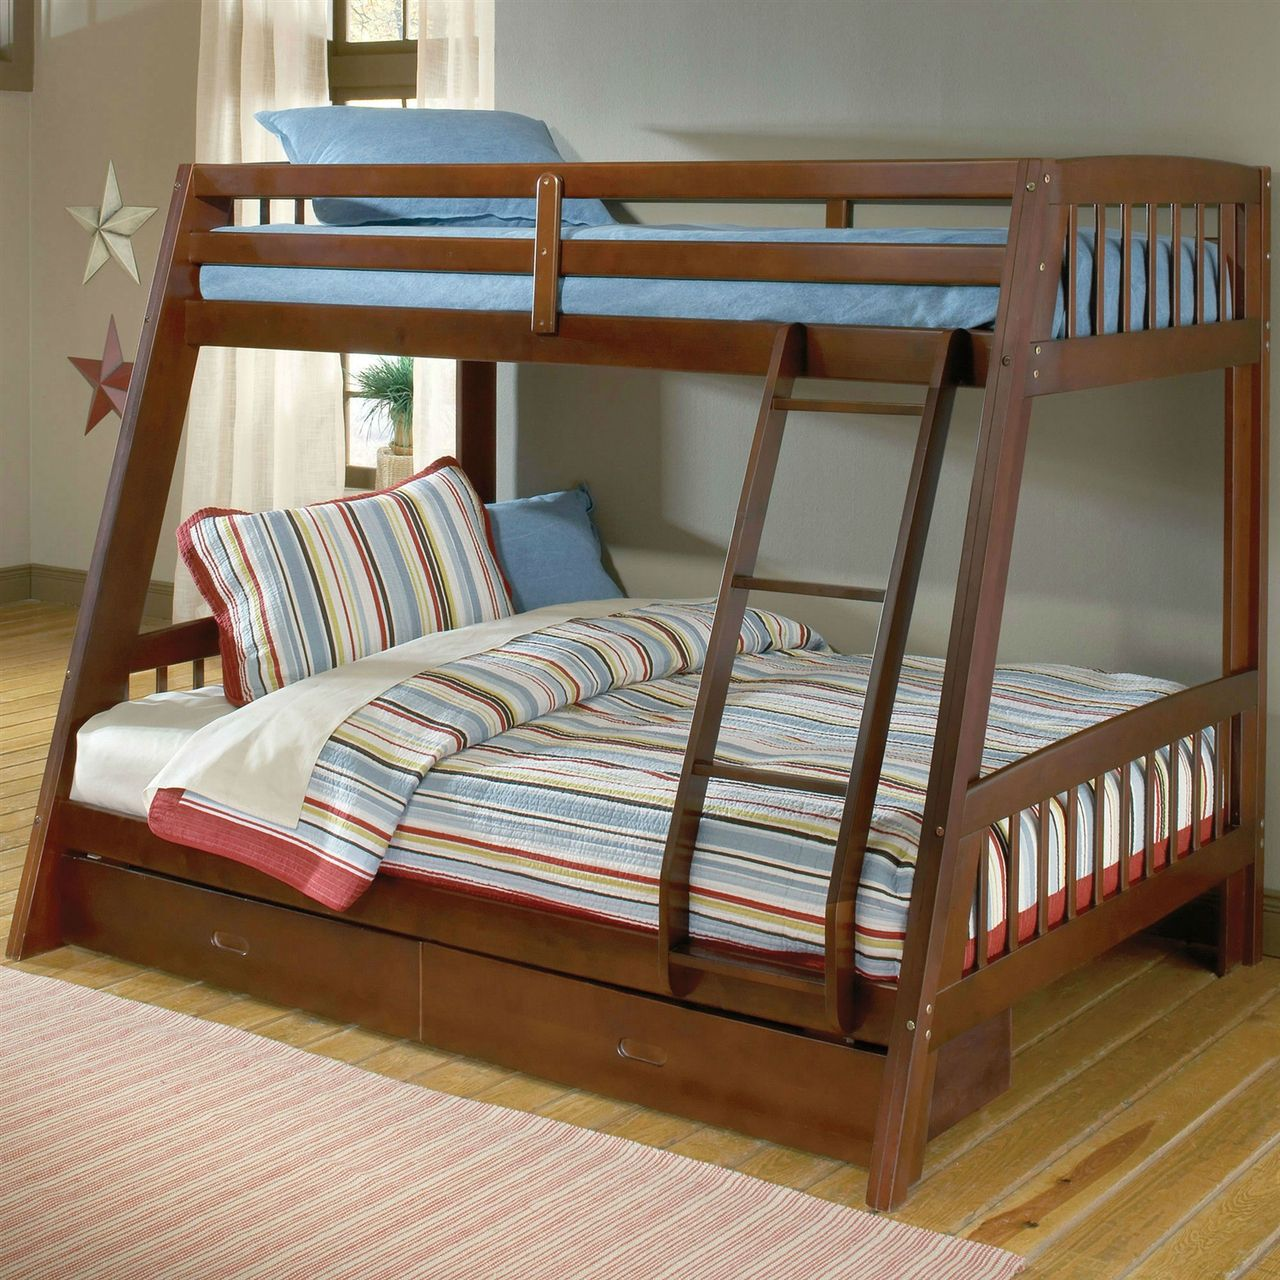 Modern Twin over Full Bunk Bed with Ladder and Storage